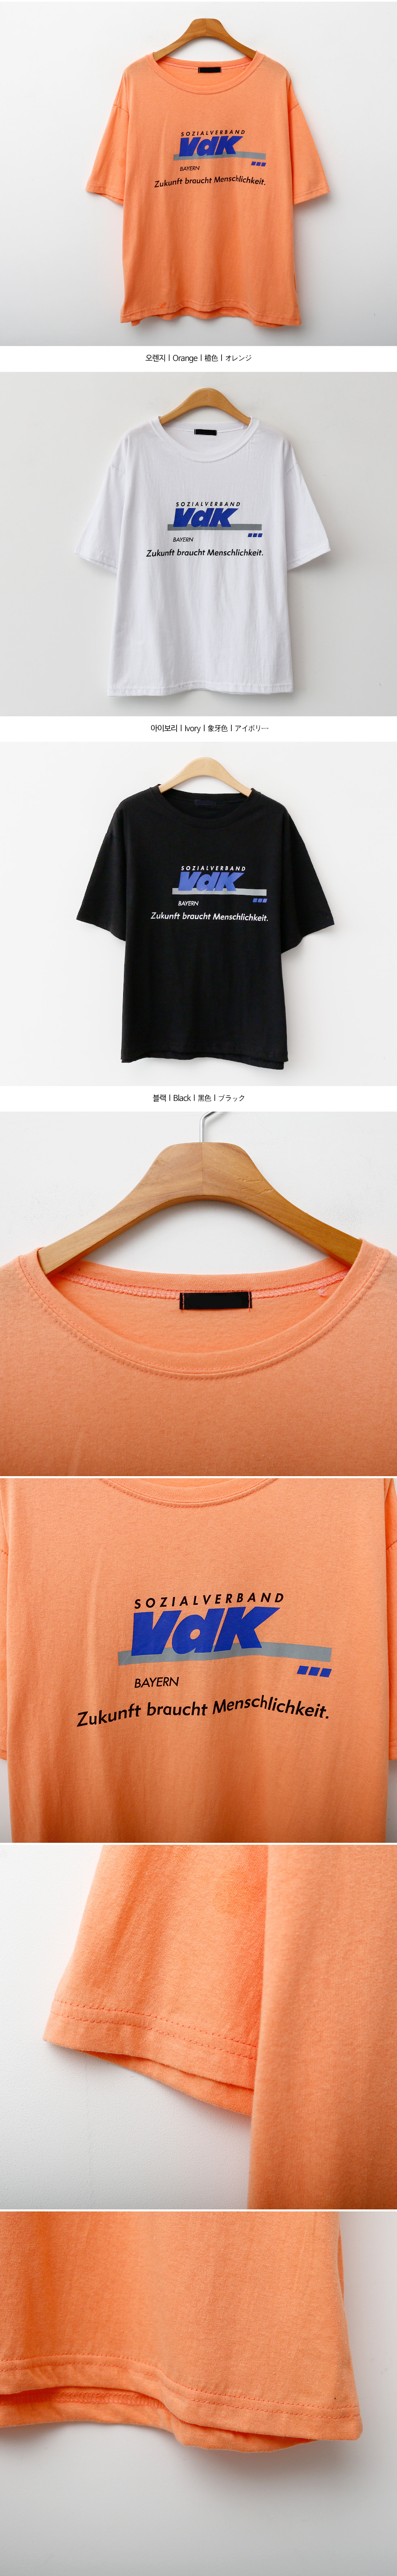 Decay cotton tee